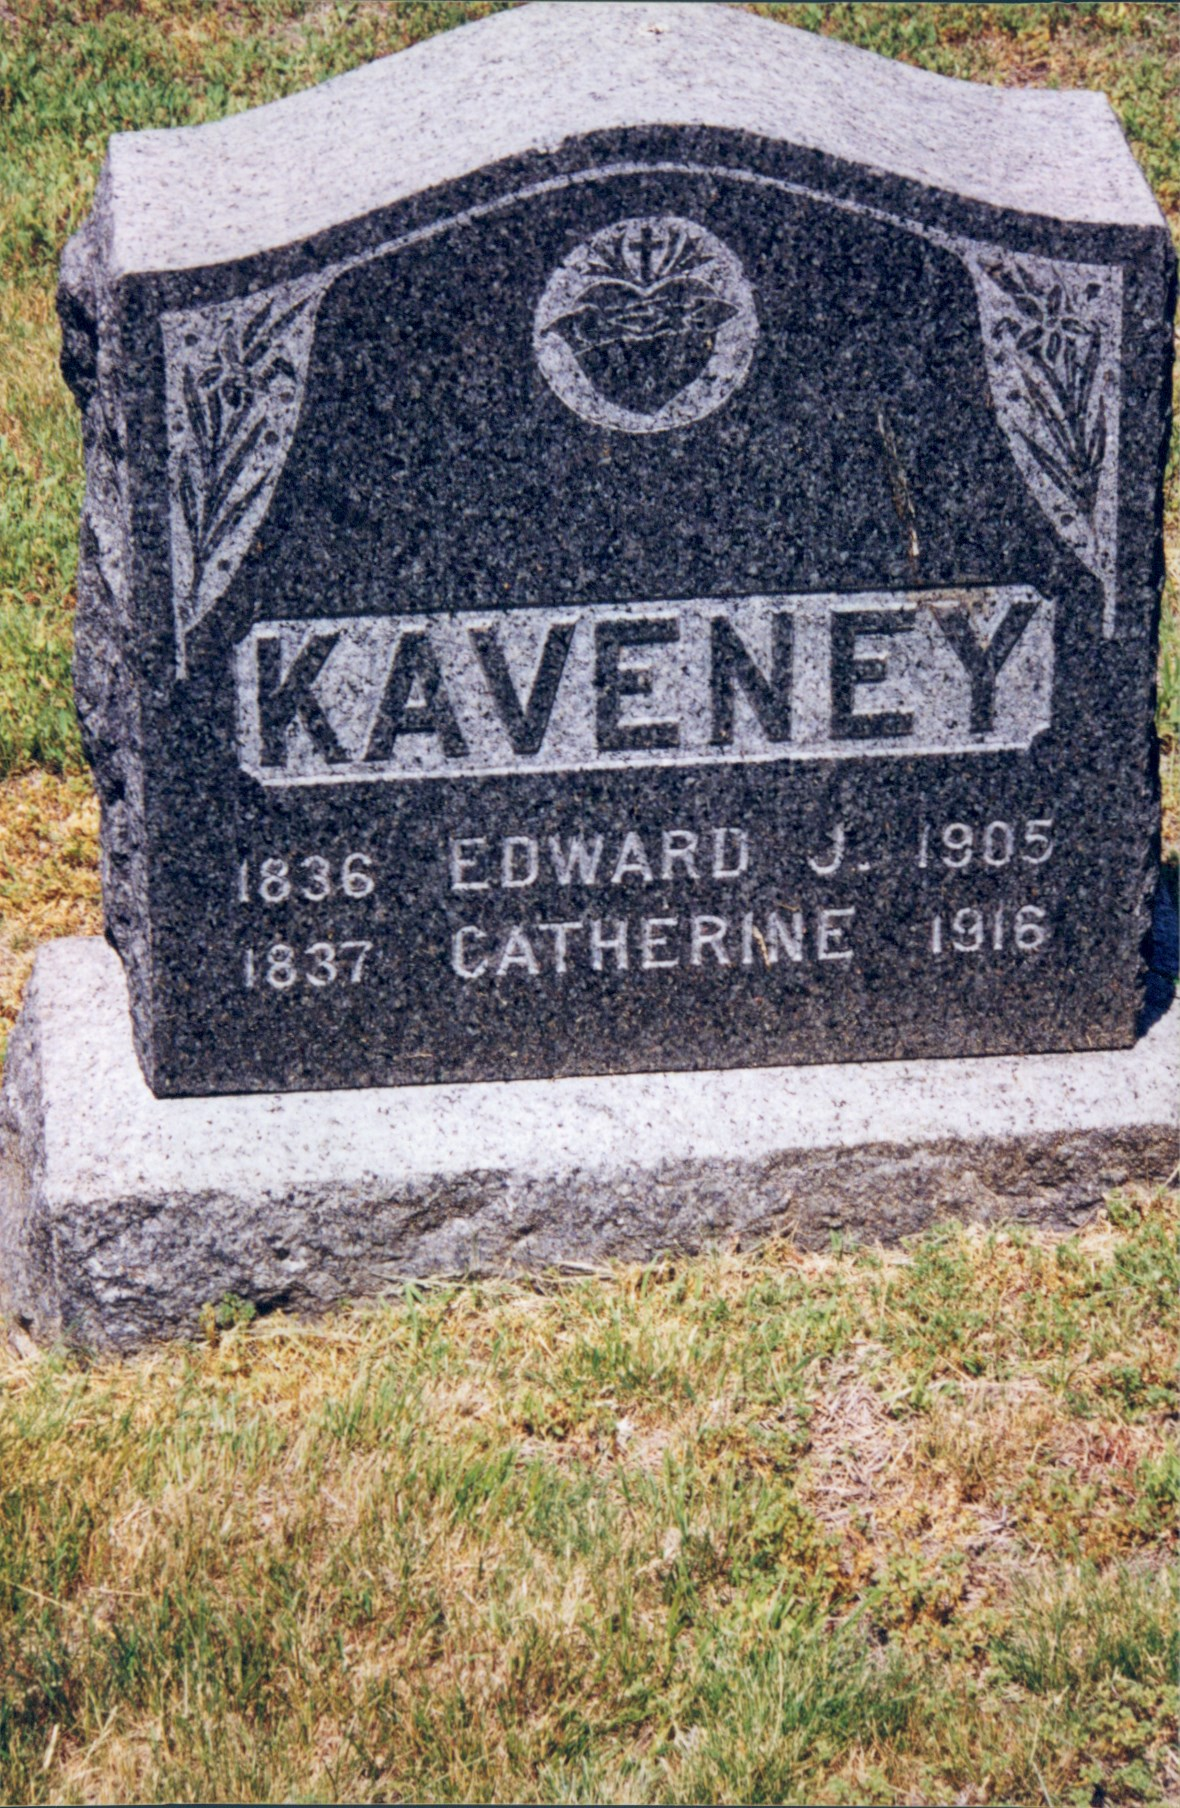 Catherine Kaveney